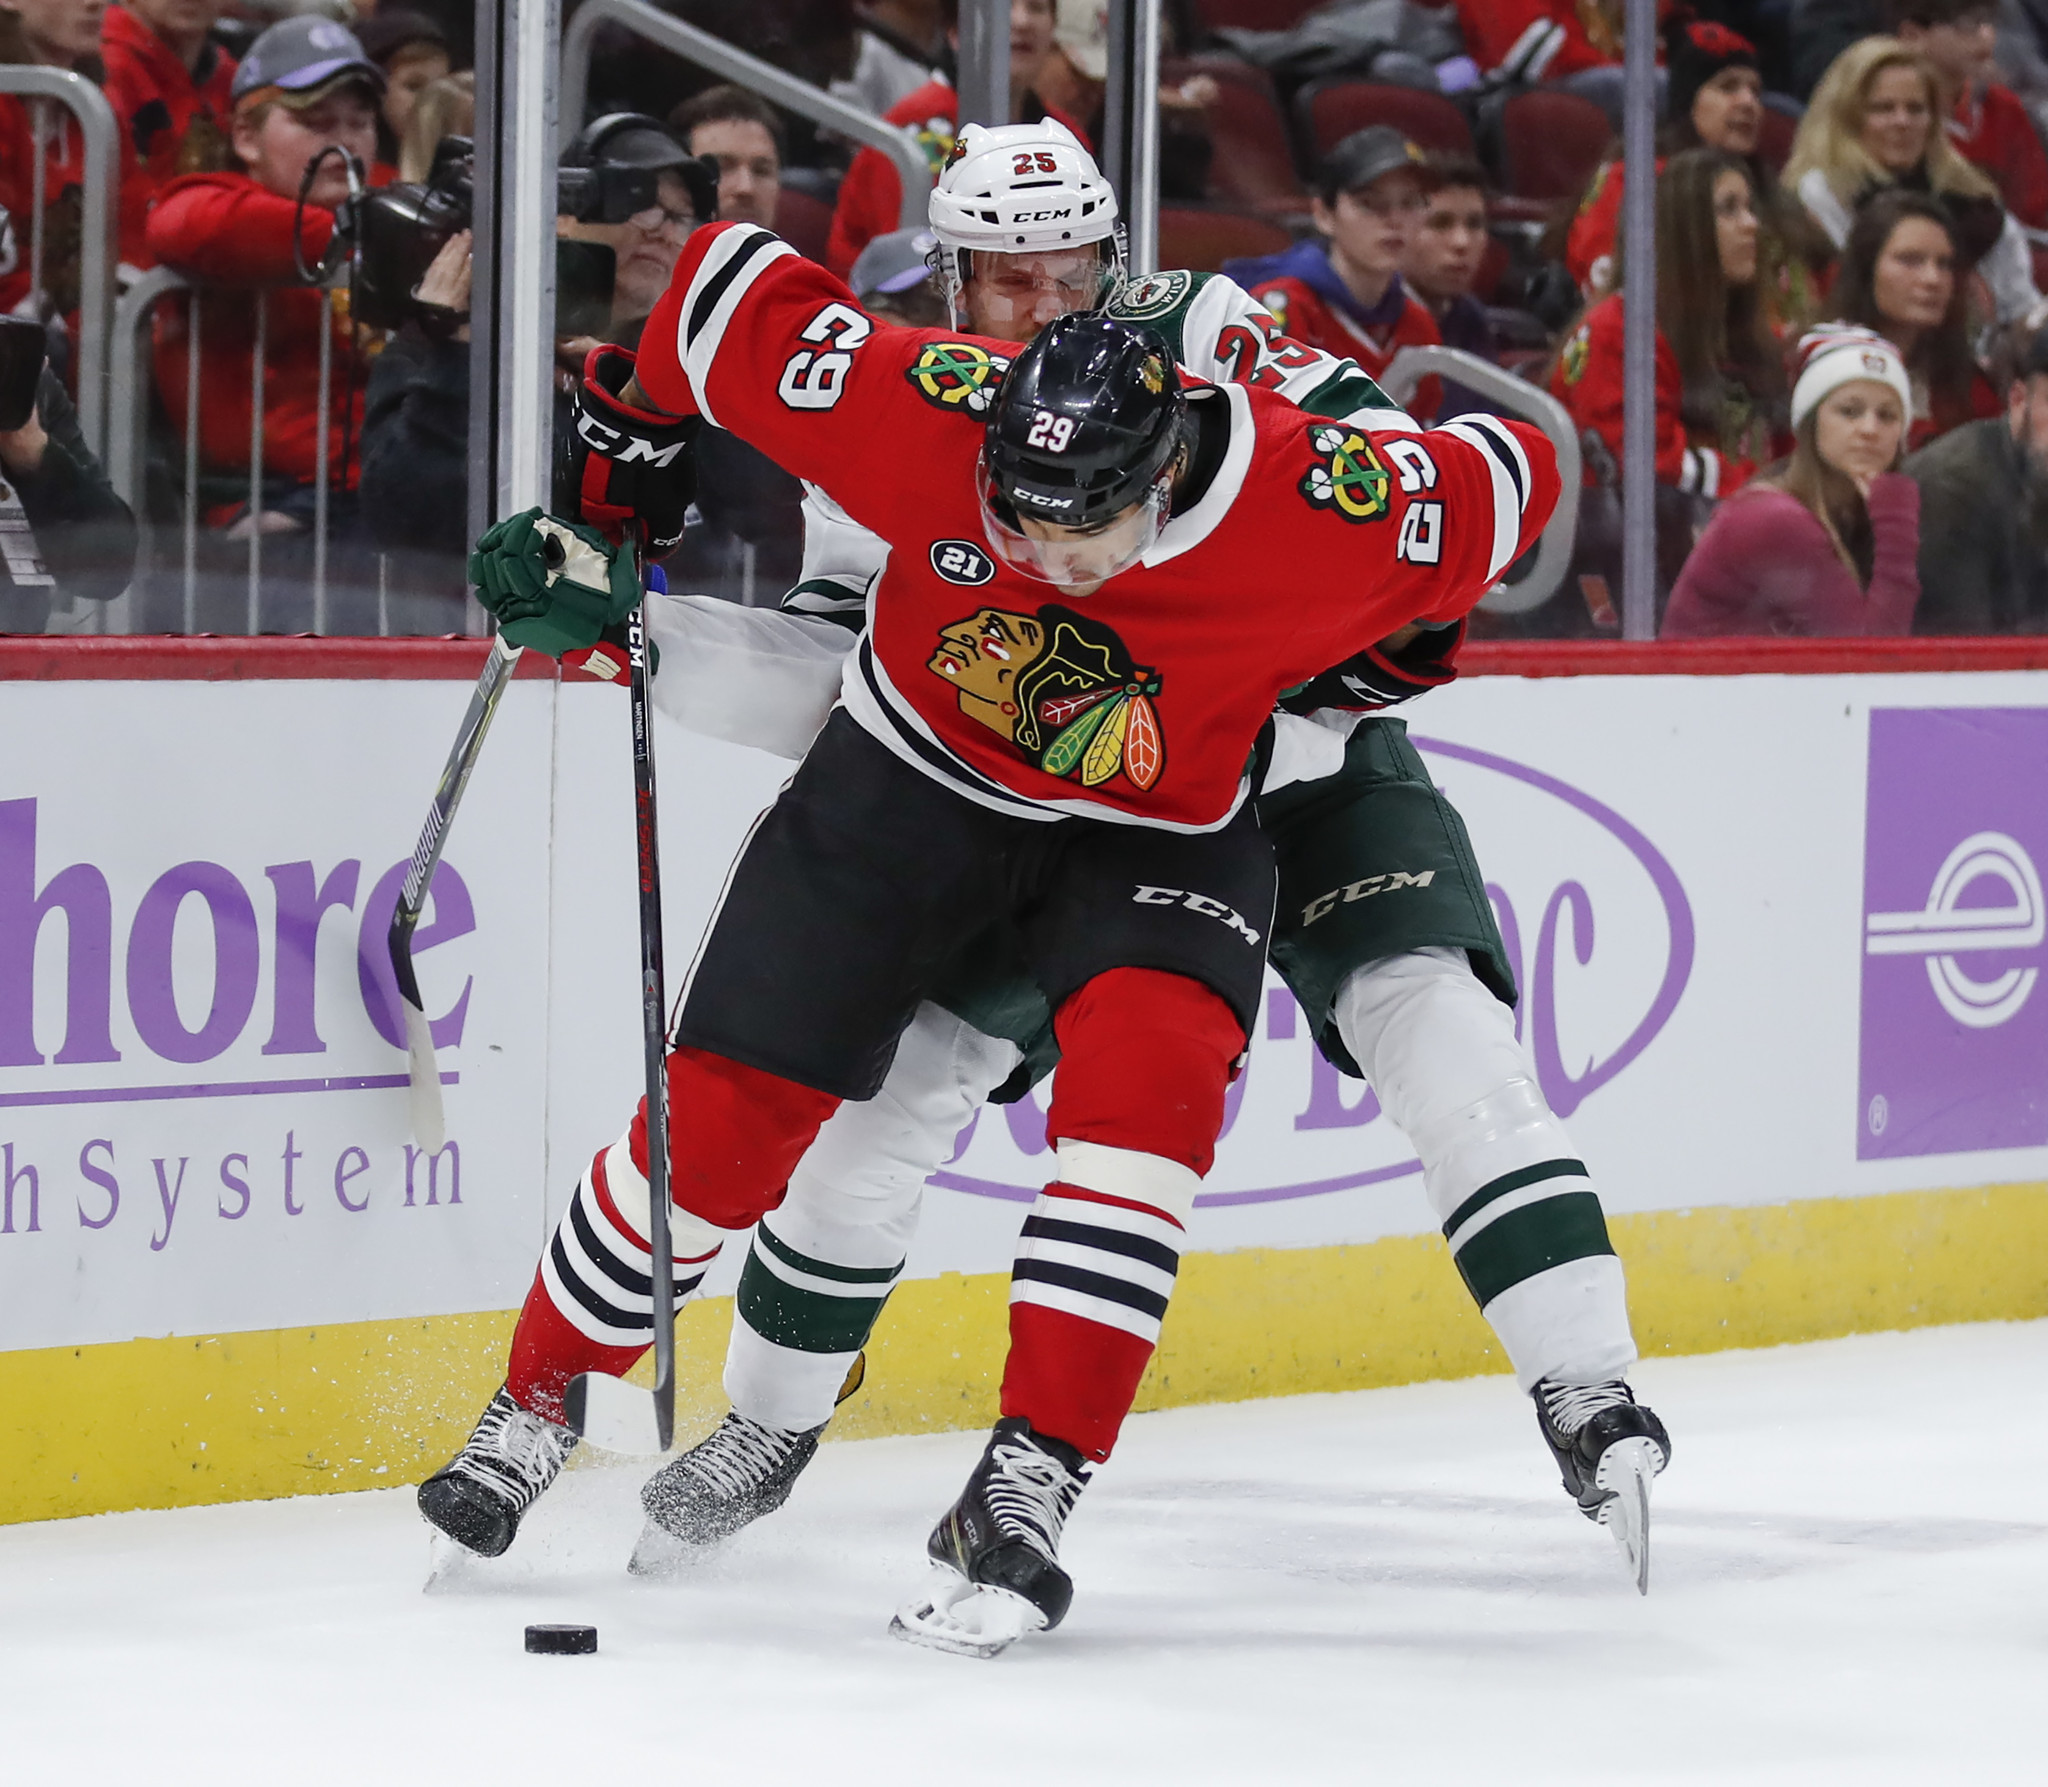 3 takeaways from Blackhawks' 3-1 win over the Wild: Brandon Saad clicks and defense strengthens